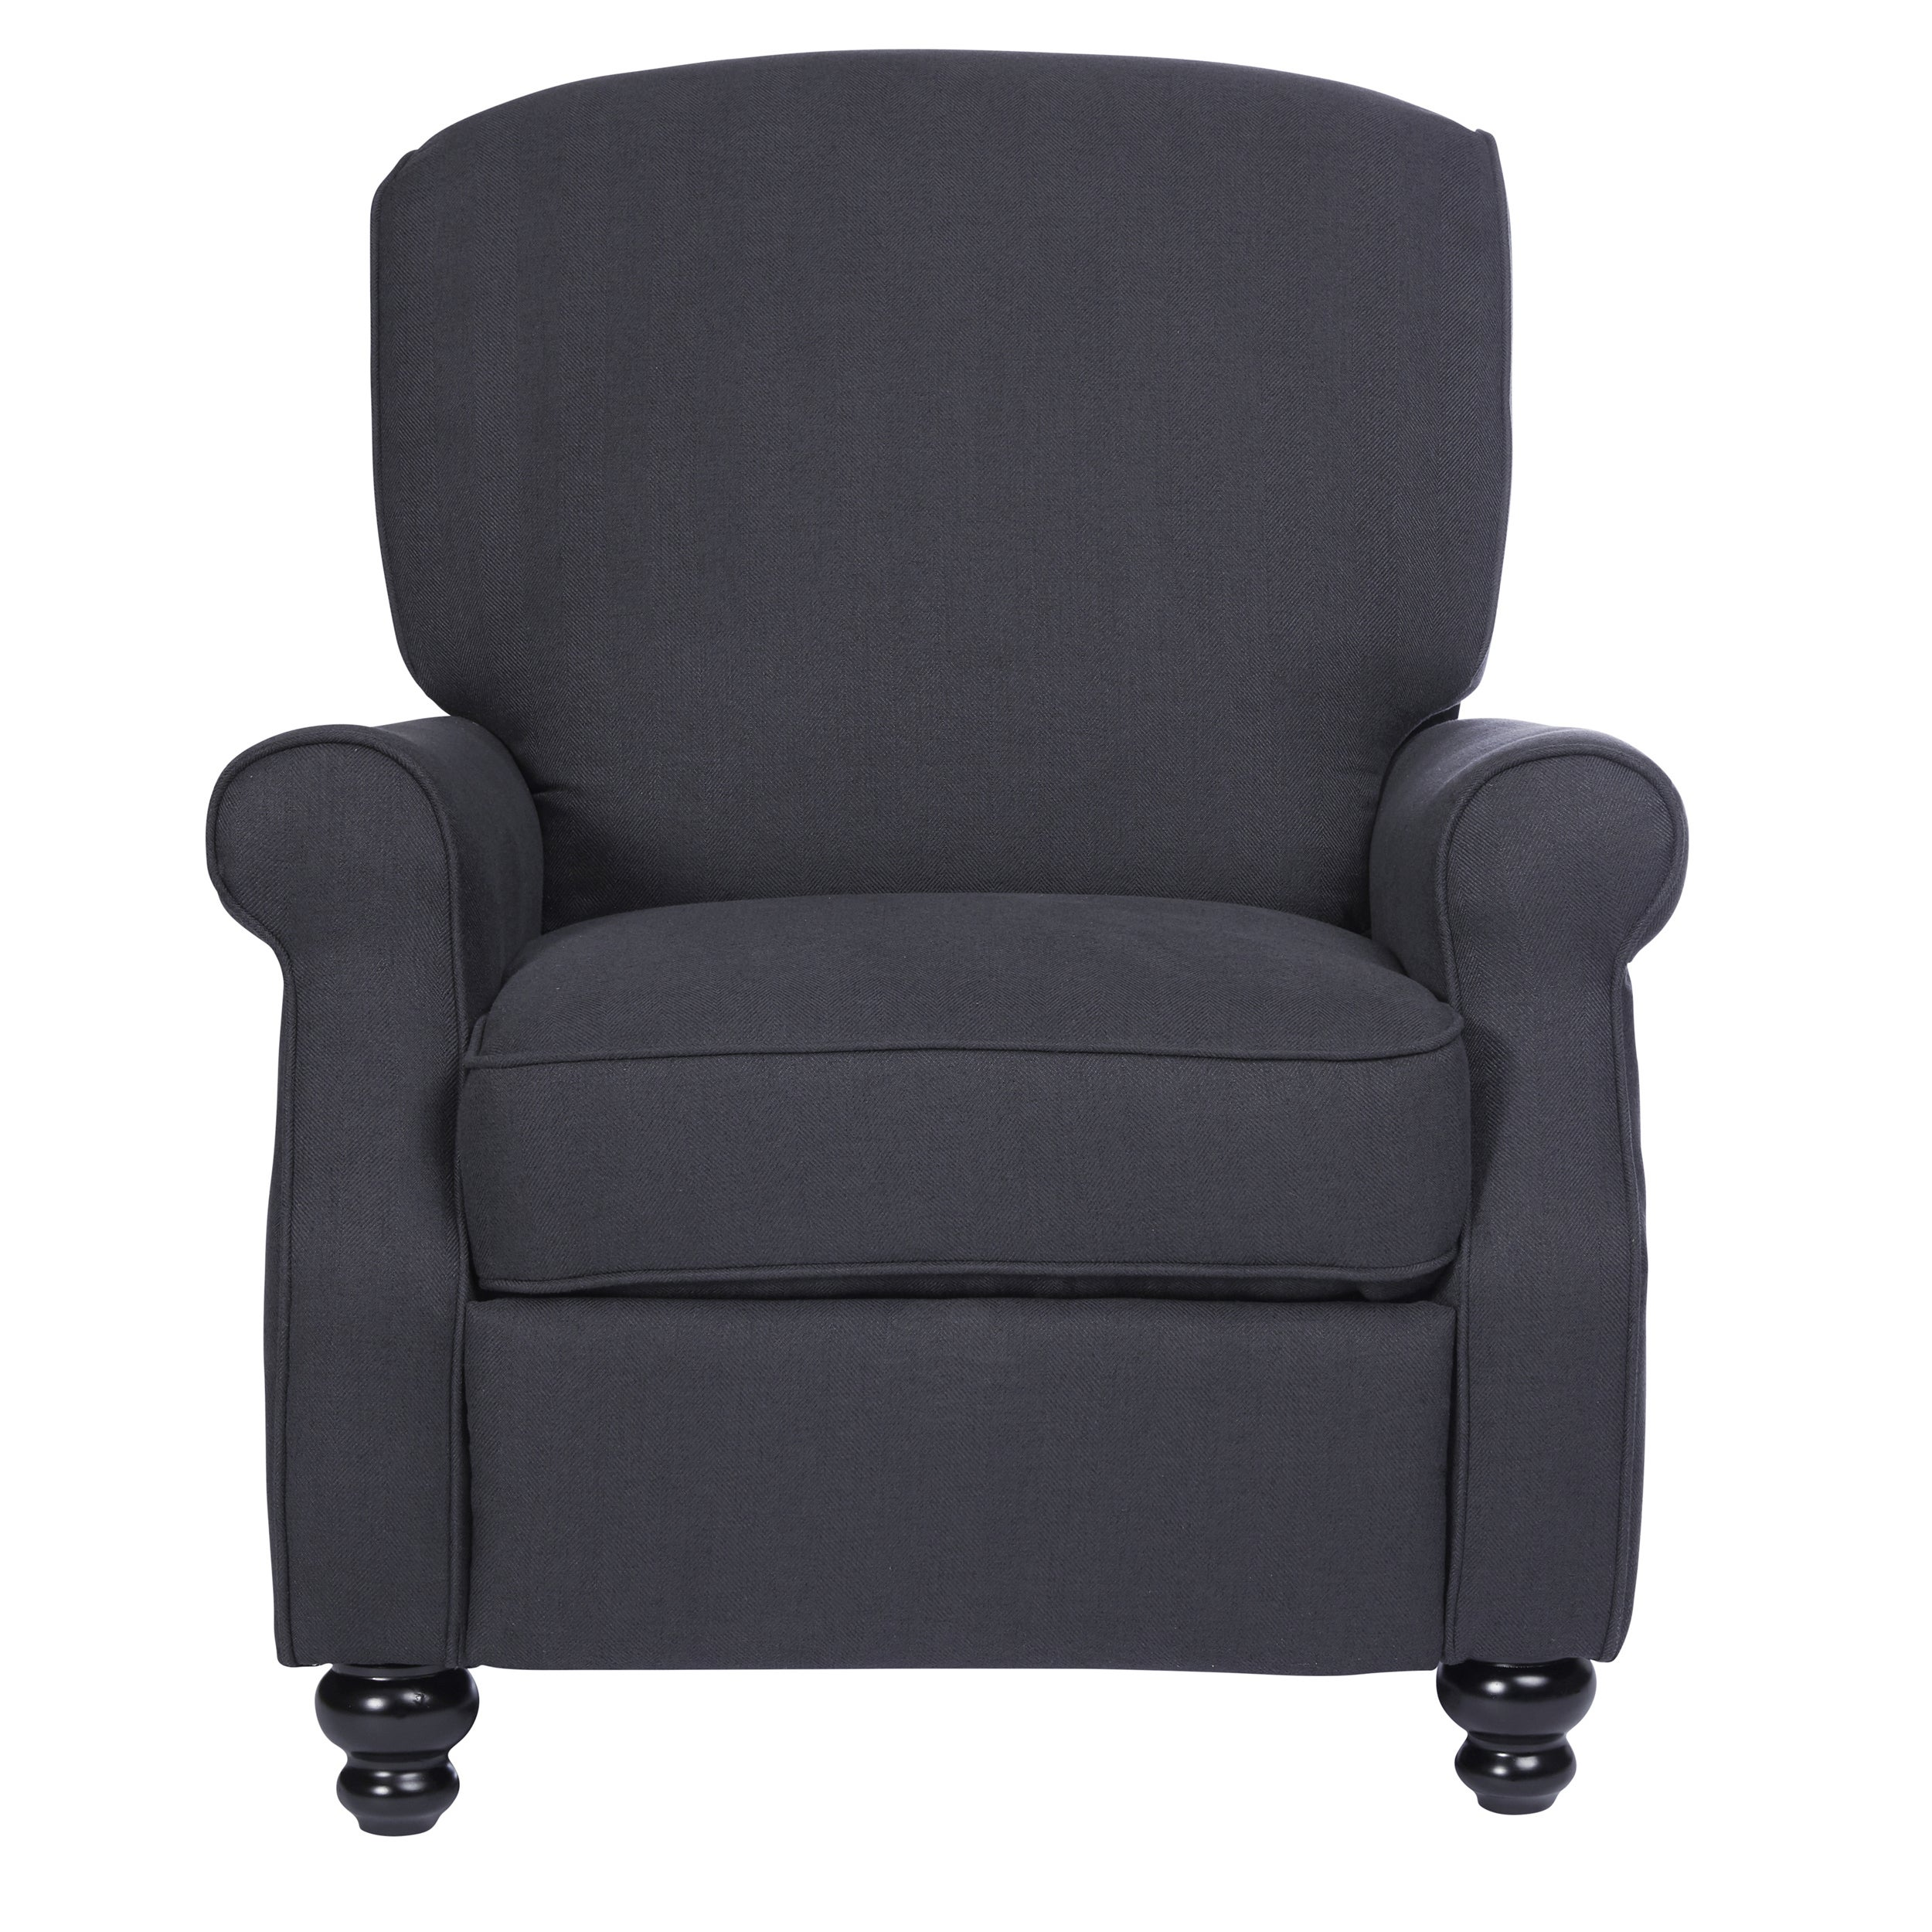 Shop ProLounger Grey Herringbone Push Back Recliner Chair   Free Shipping  Today   Overstock.com   18152650